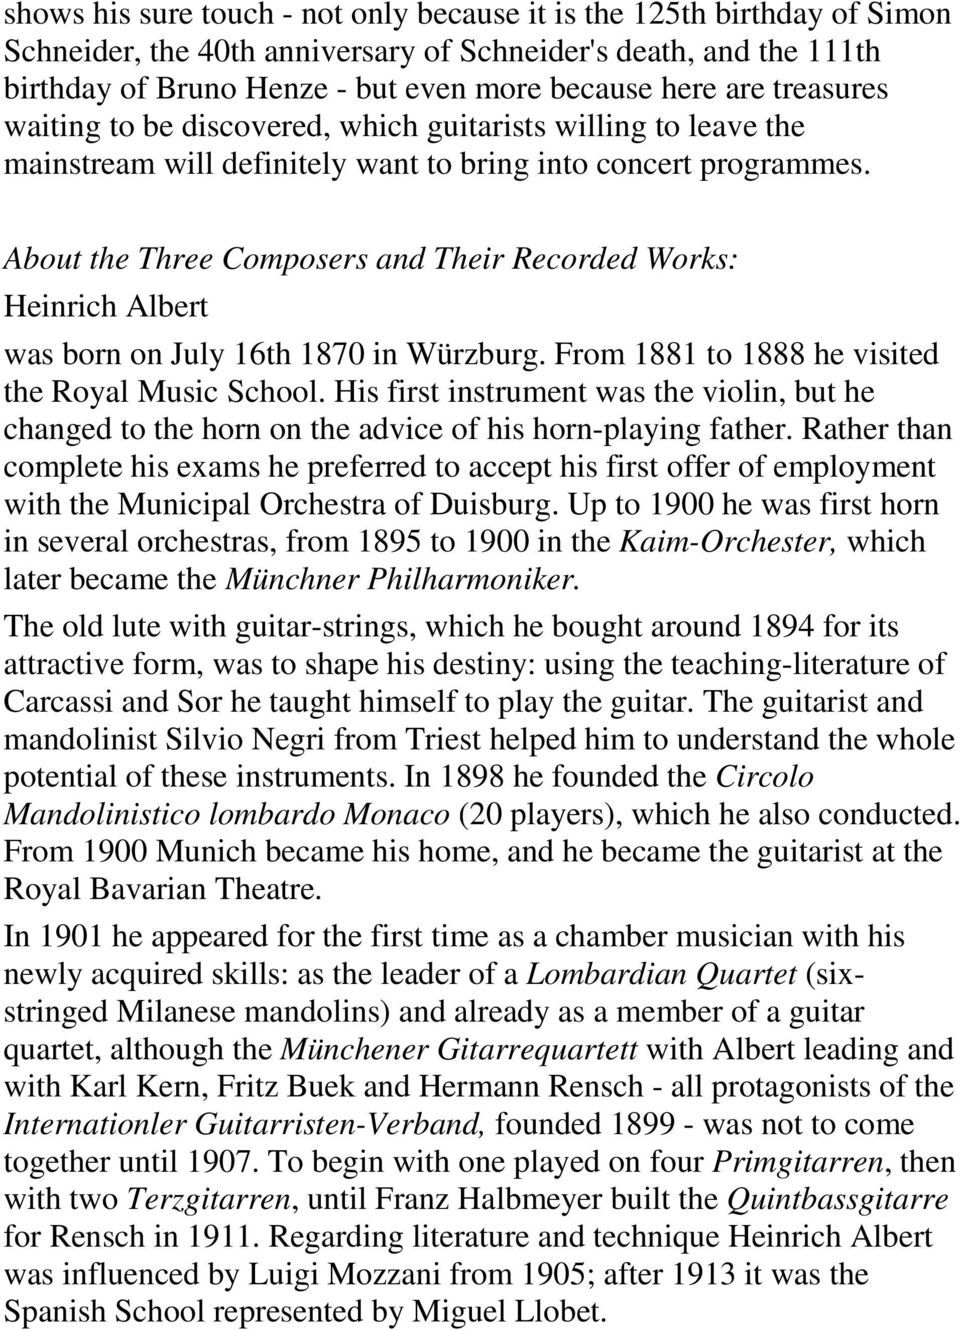 About the Three Composers and Their Recorded Works: Heinrich Albert was born on July 16th 1870 in Würzburg. From 1881 to 1888 he visited the Royal Music School.